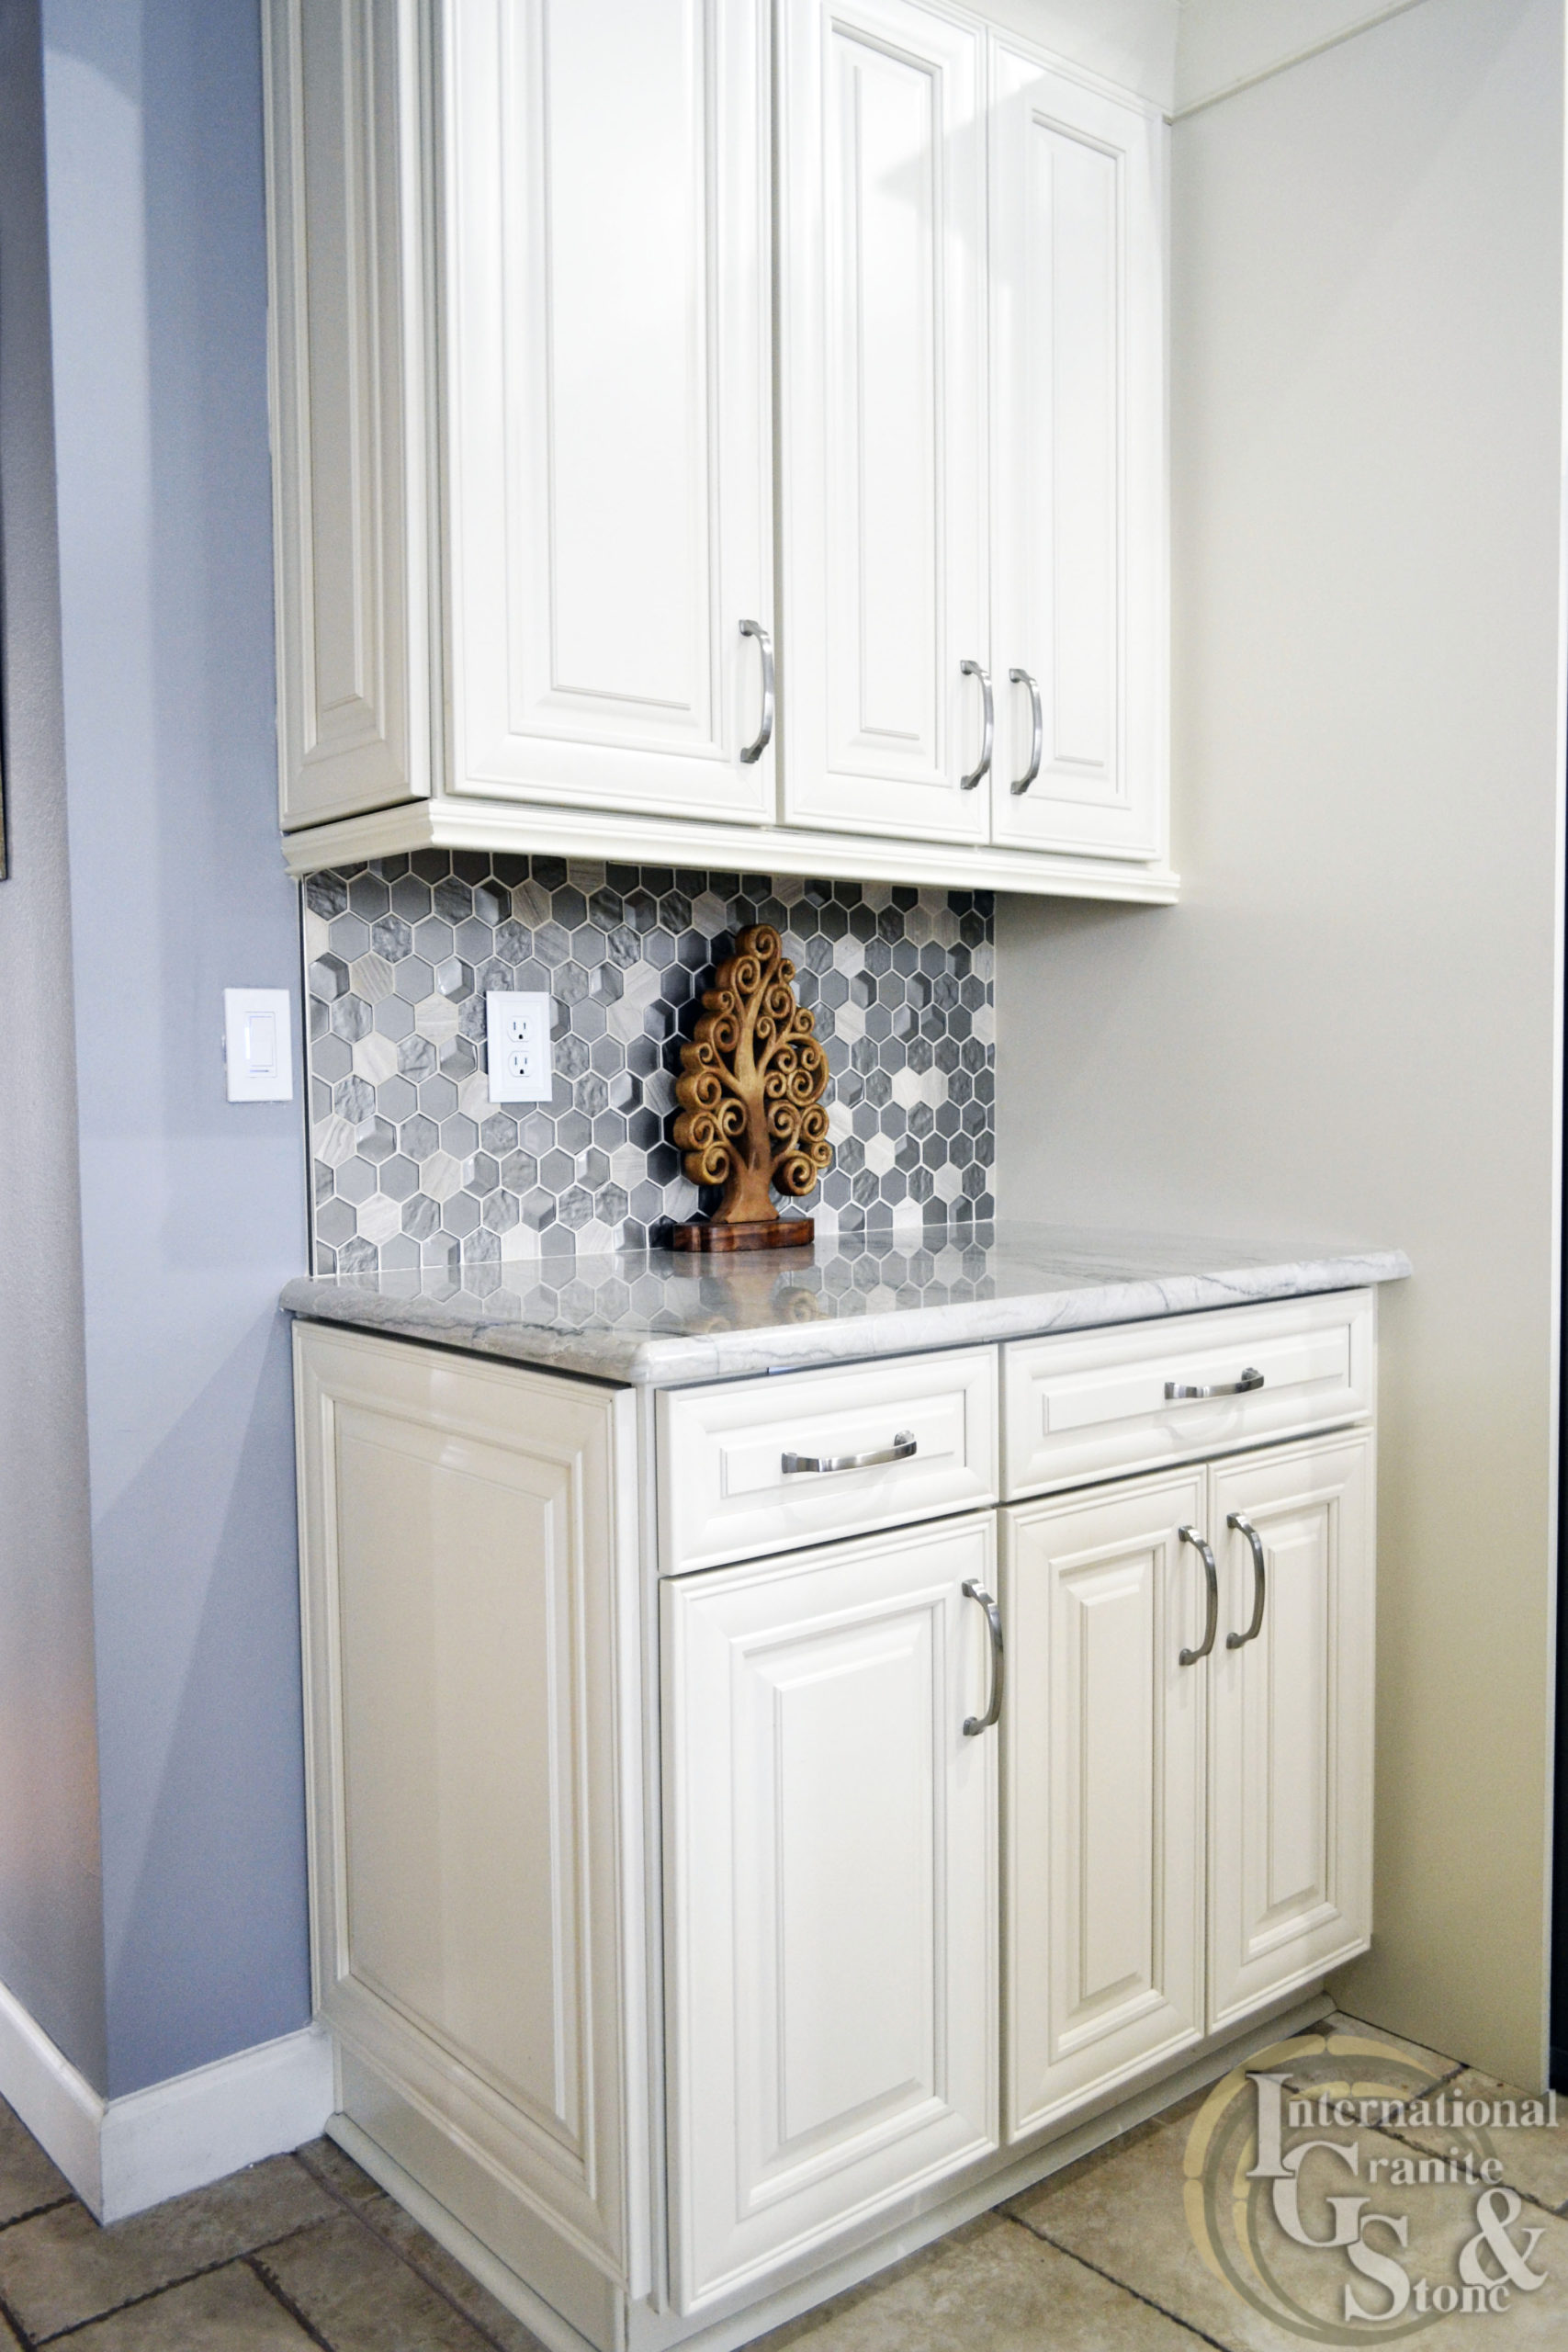 Quartzite Countertops with White Cabinets and Tile Backsplash